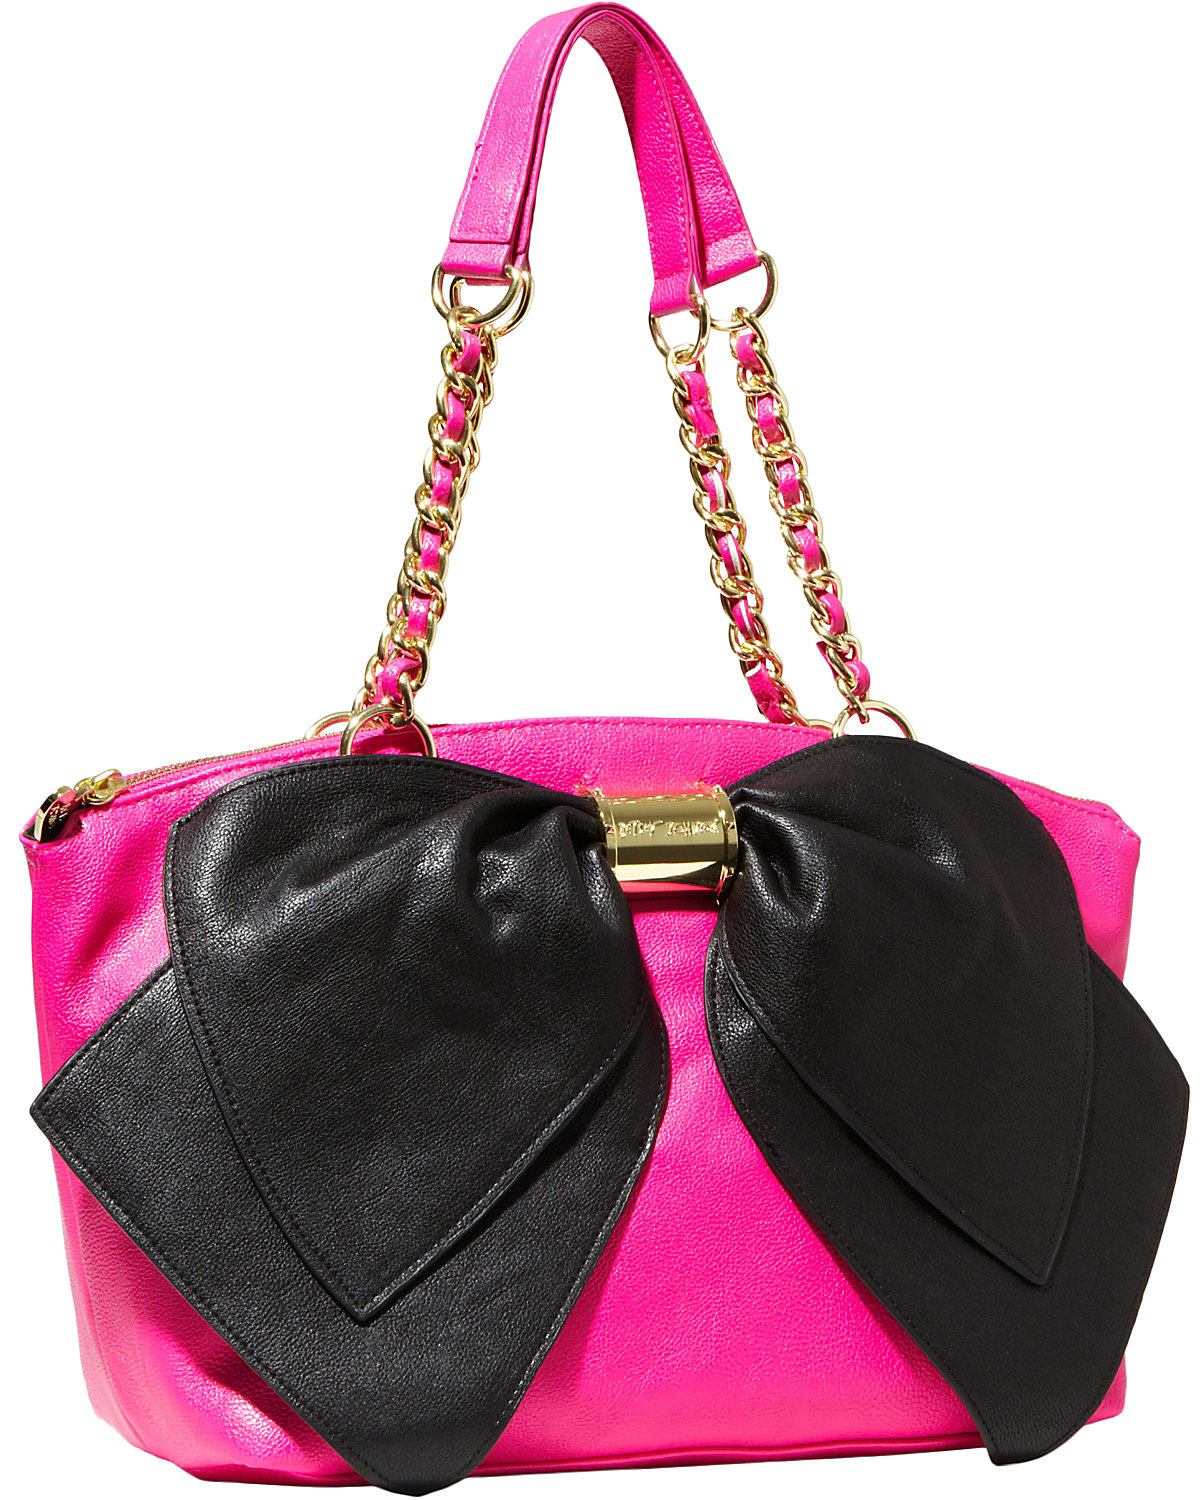 Latest Designer bags and sunglasses for women by Betsey Johnson 2014-2015 (2)